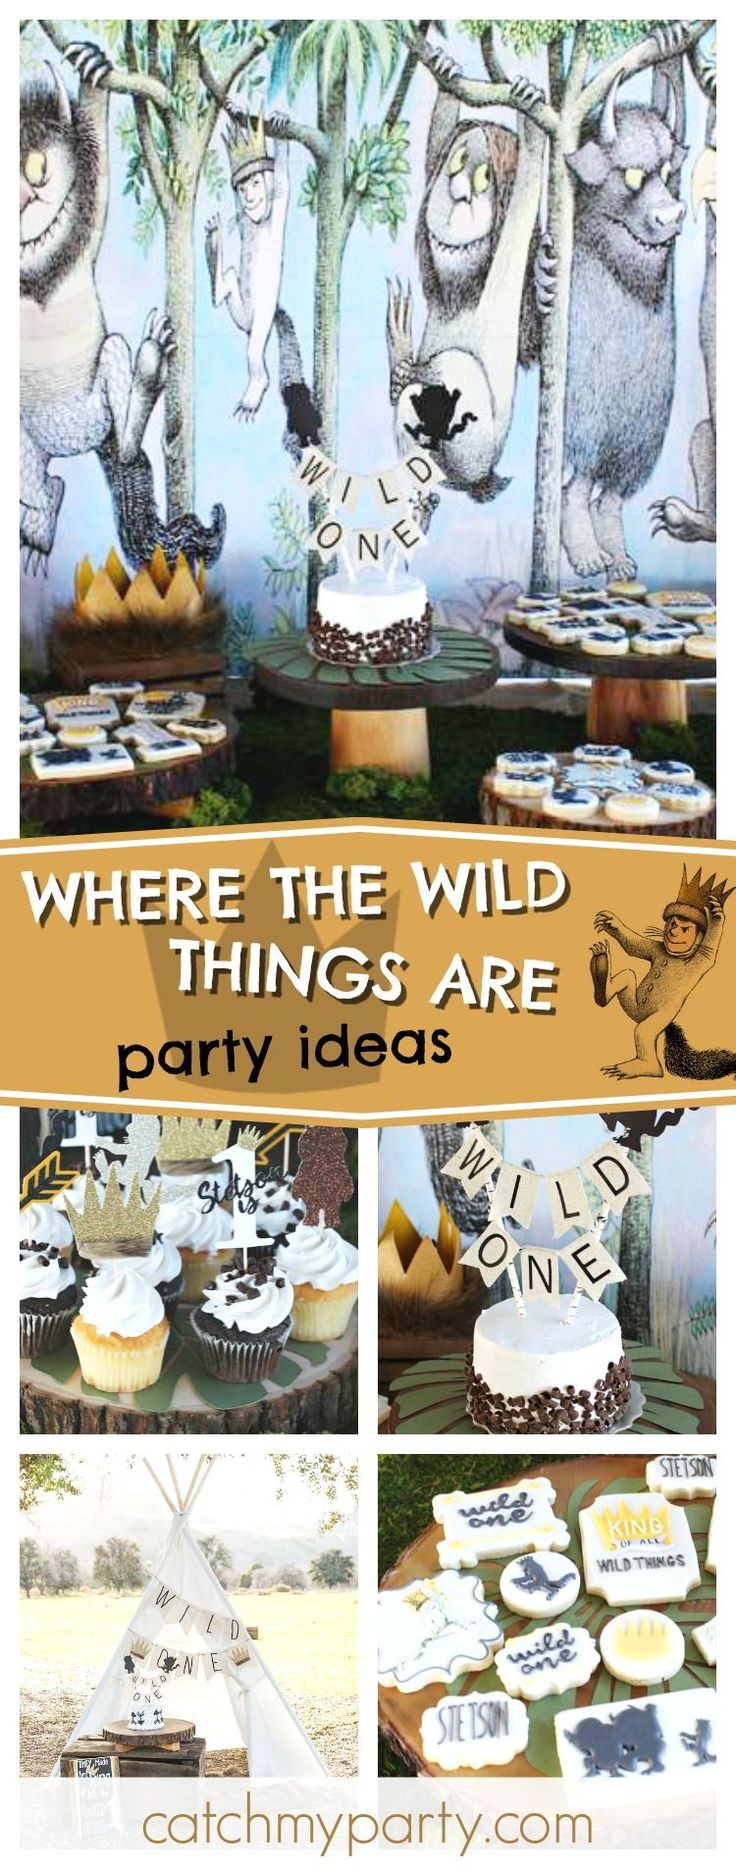 Check out this fantastic Where the Wild Things Are 1st birthday party! The mix of cookies are awesome!! See more party ideas and share yours at CatchMyParty.com #catchtheparty #wherethewildthingare #1stbirthdayparty #wildonebirthdayparty